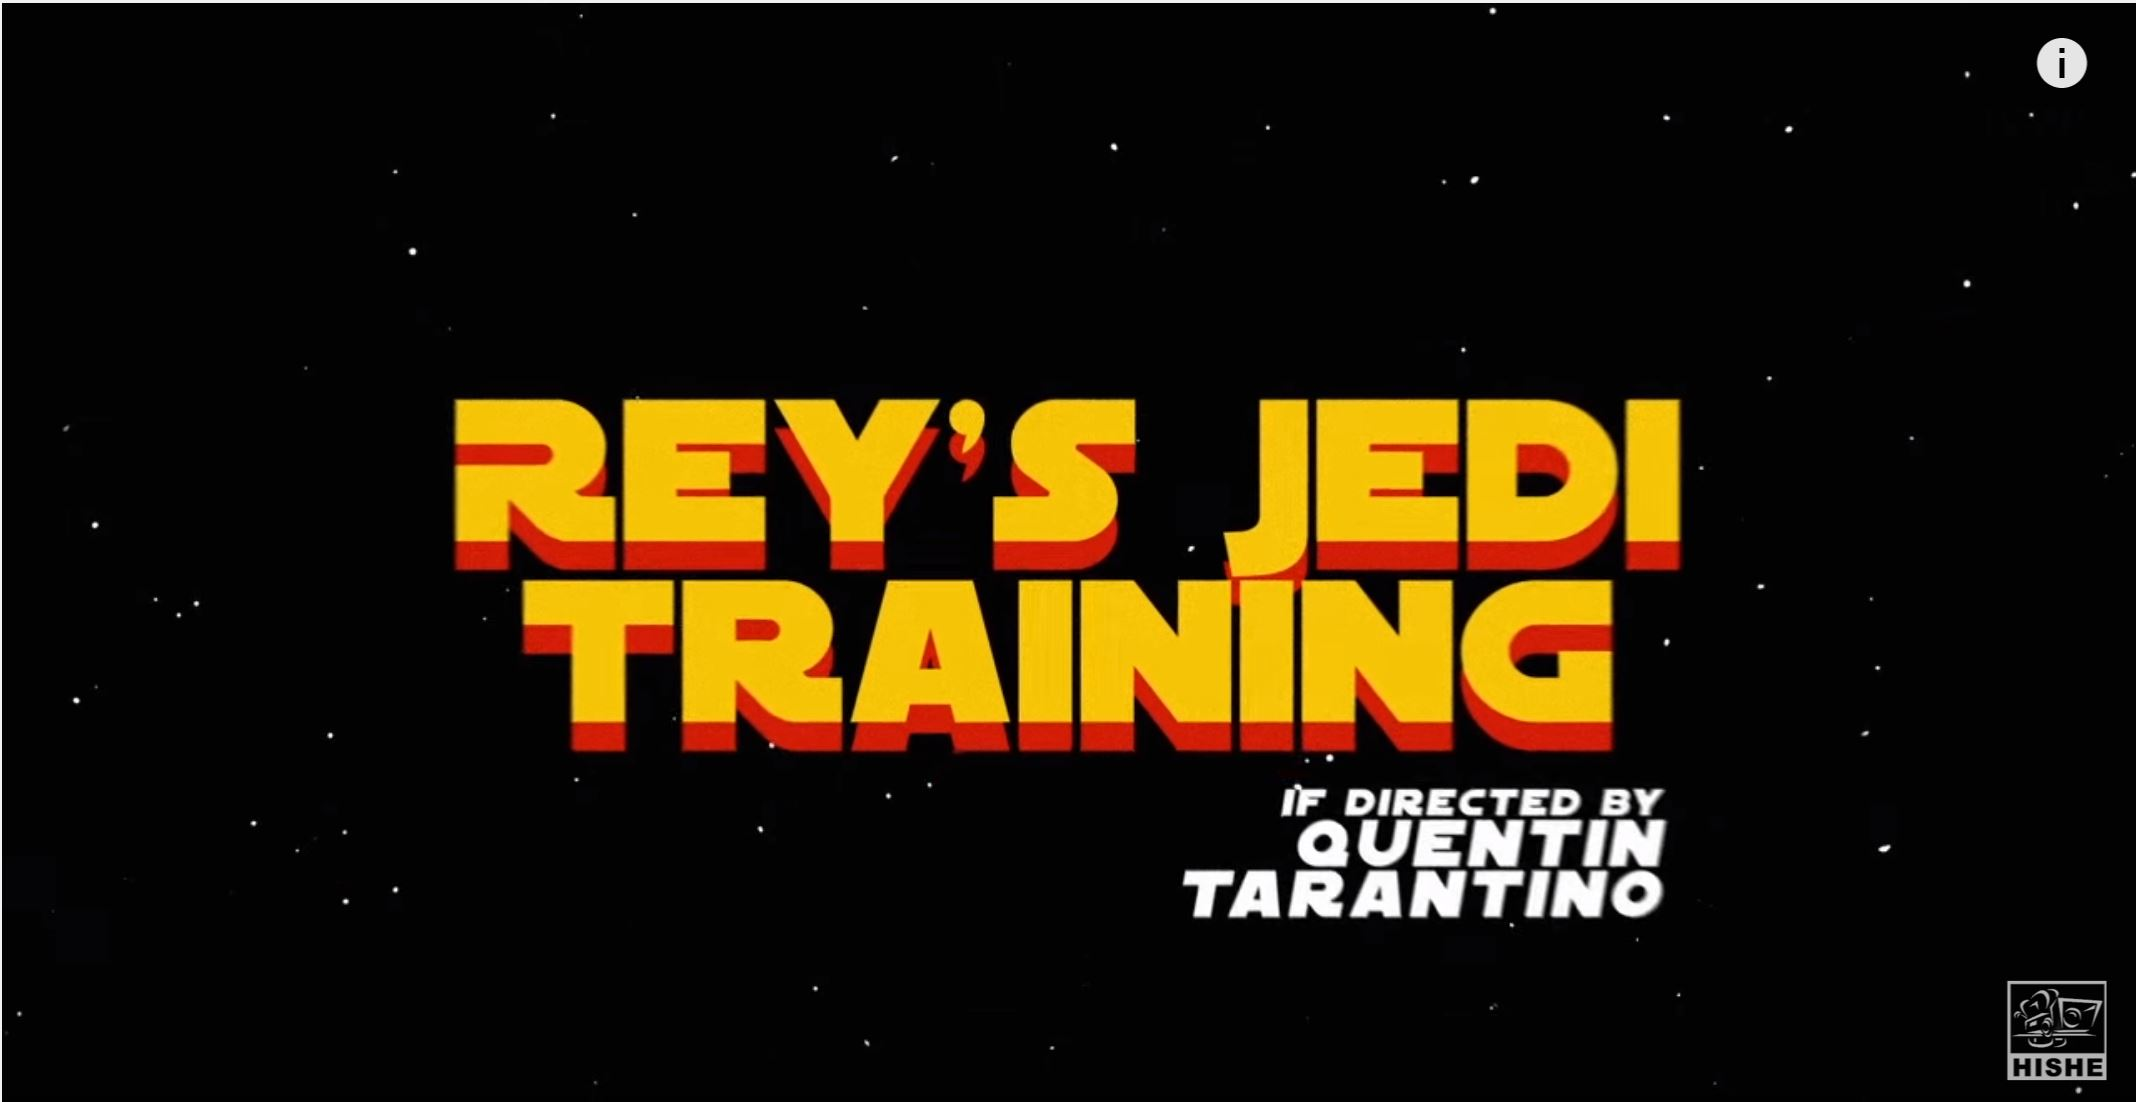 Rey's Jedi Training Directed By Quentin Tarantino